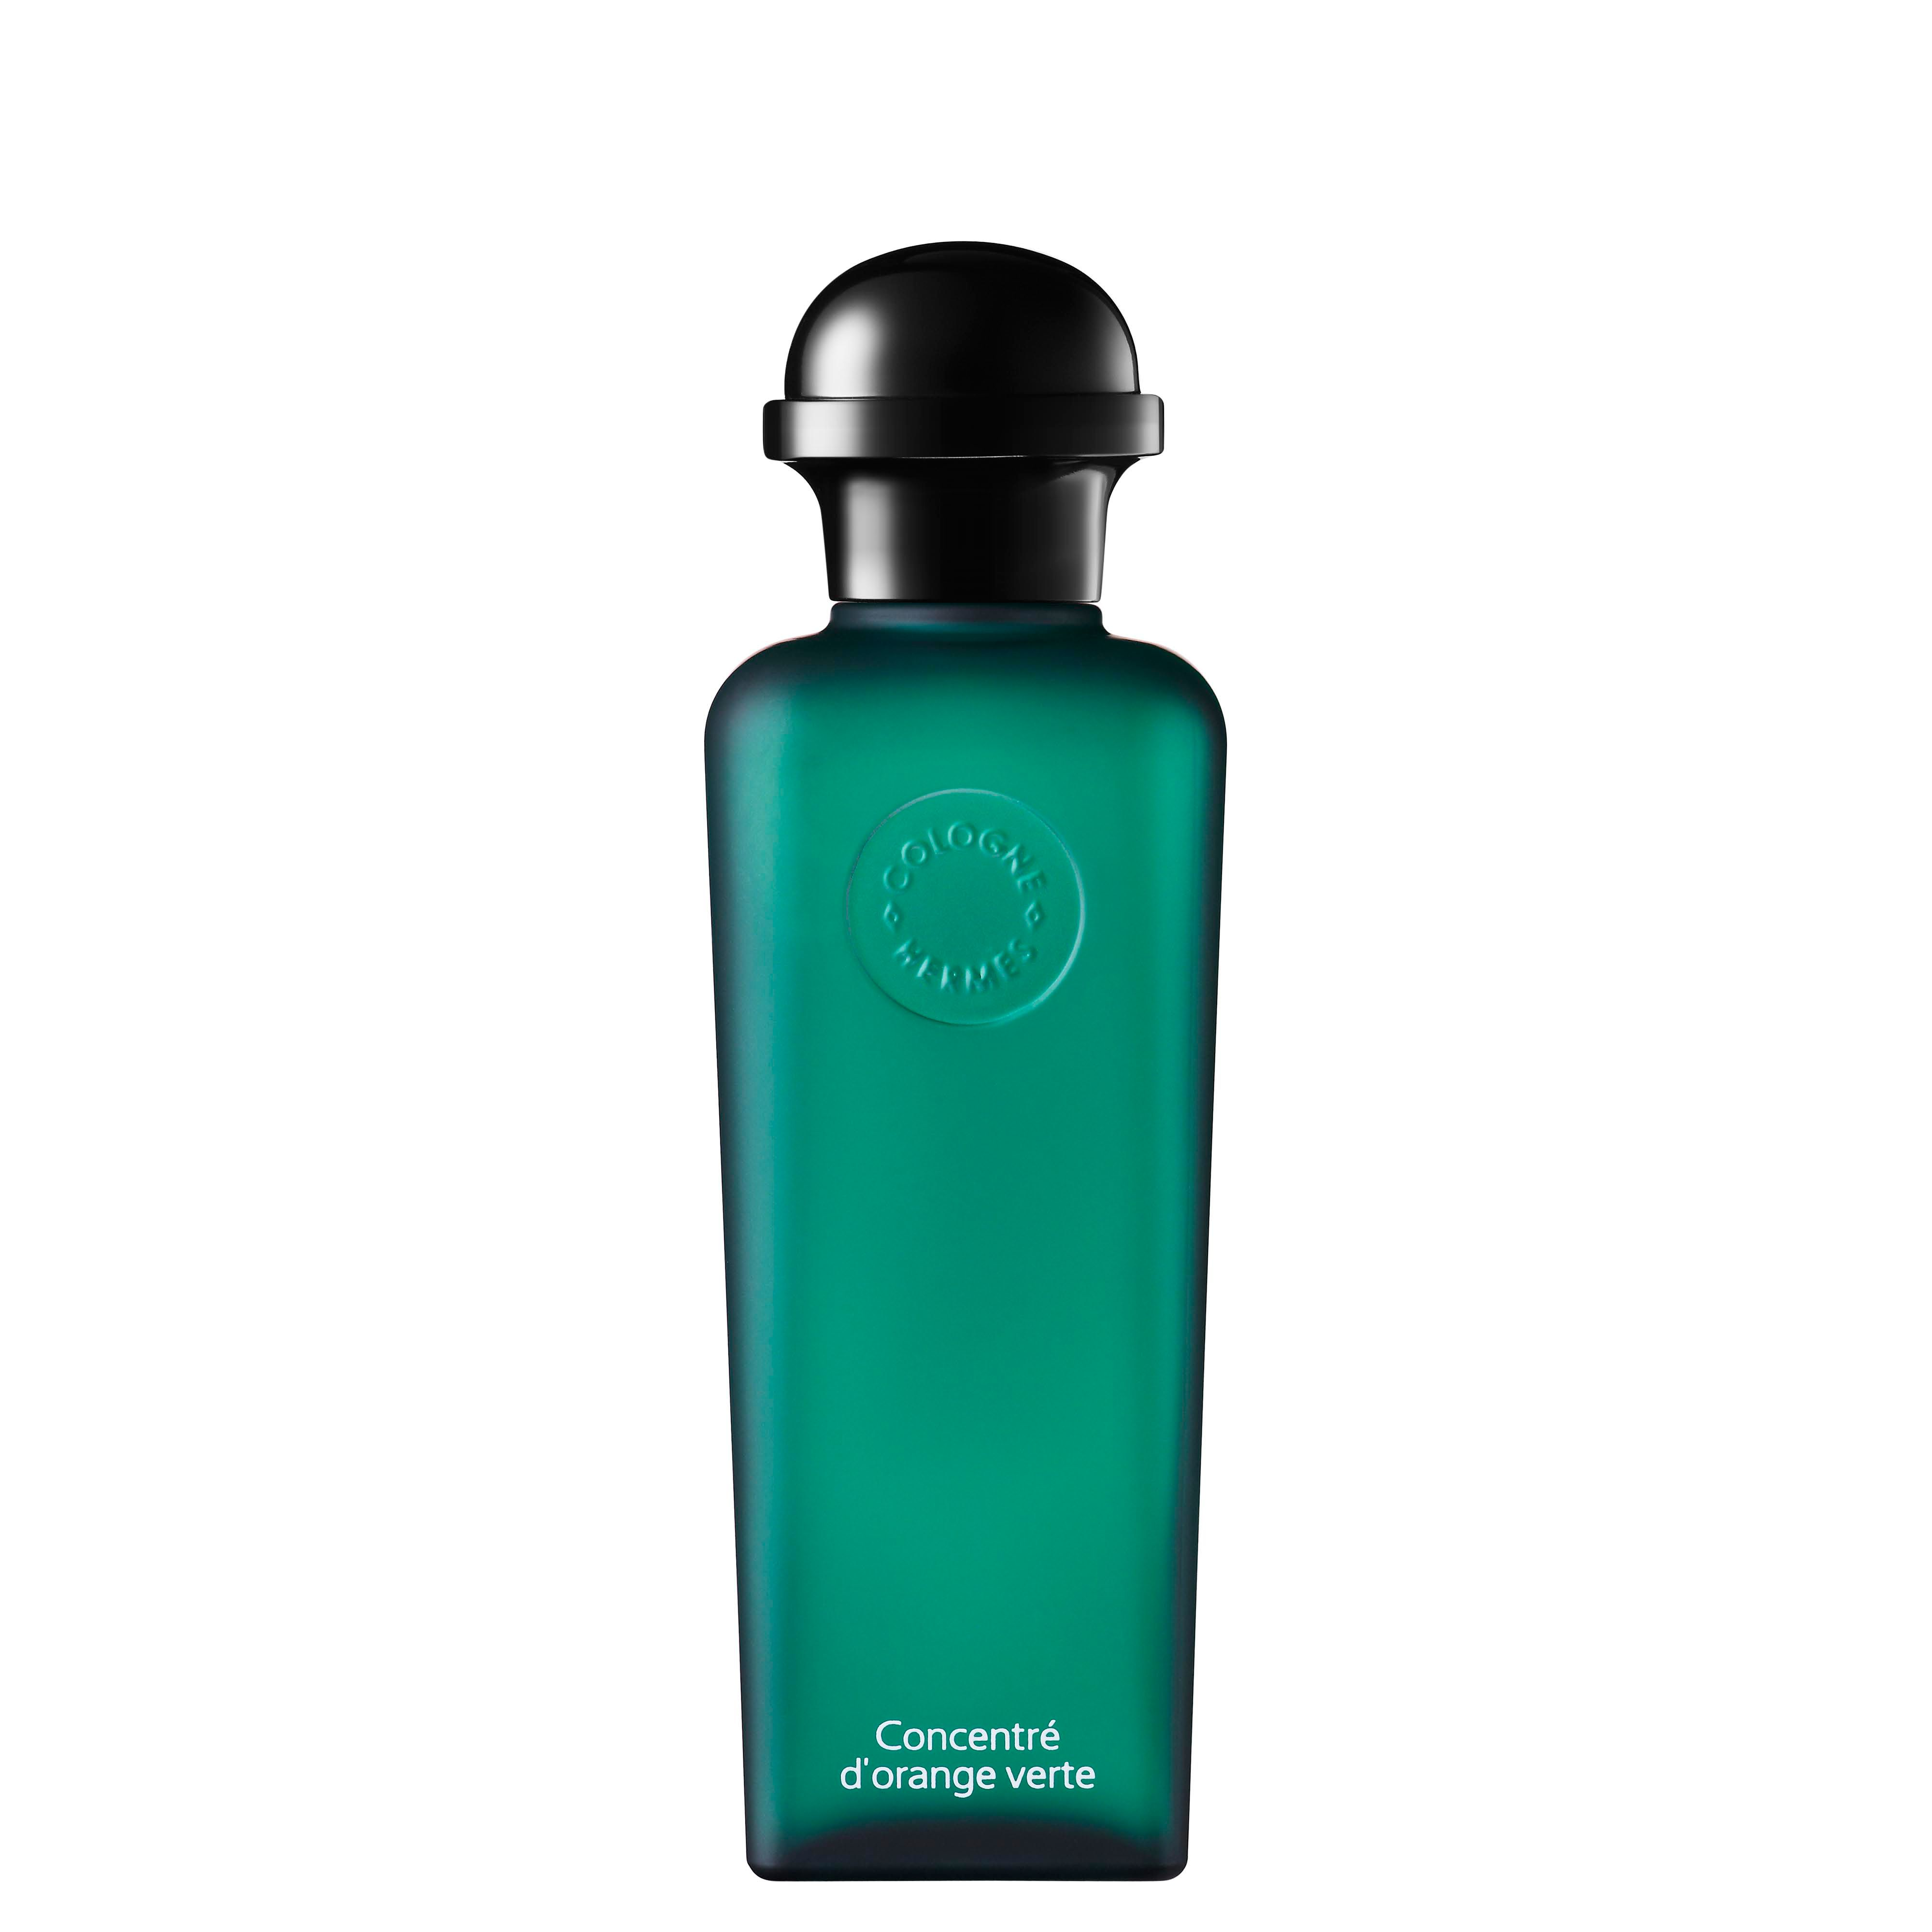 Eau d`Orange Verte Concentre Eau de Toilette